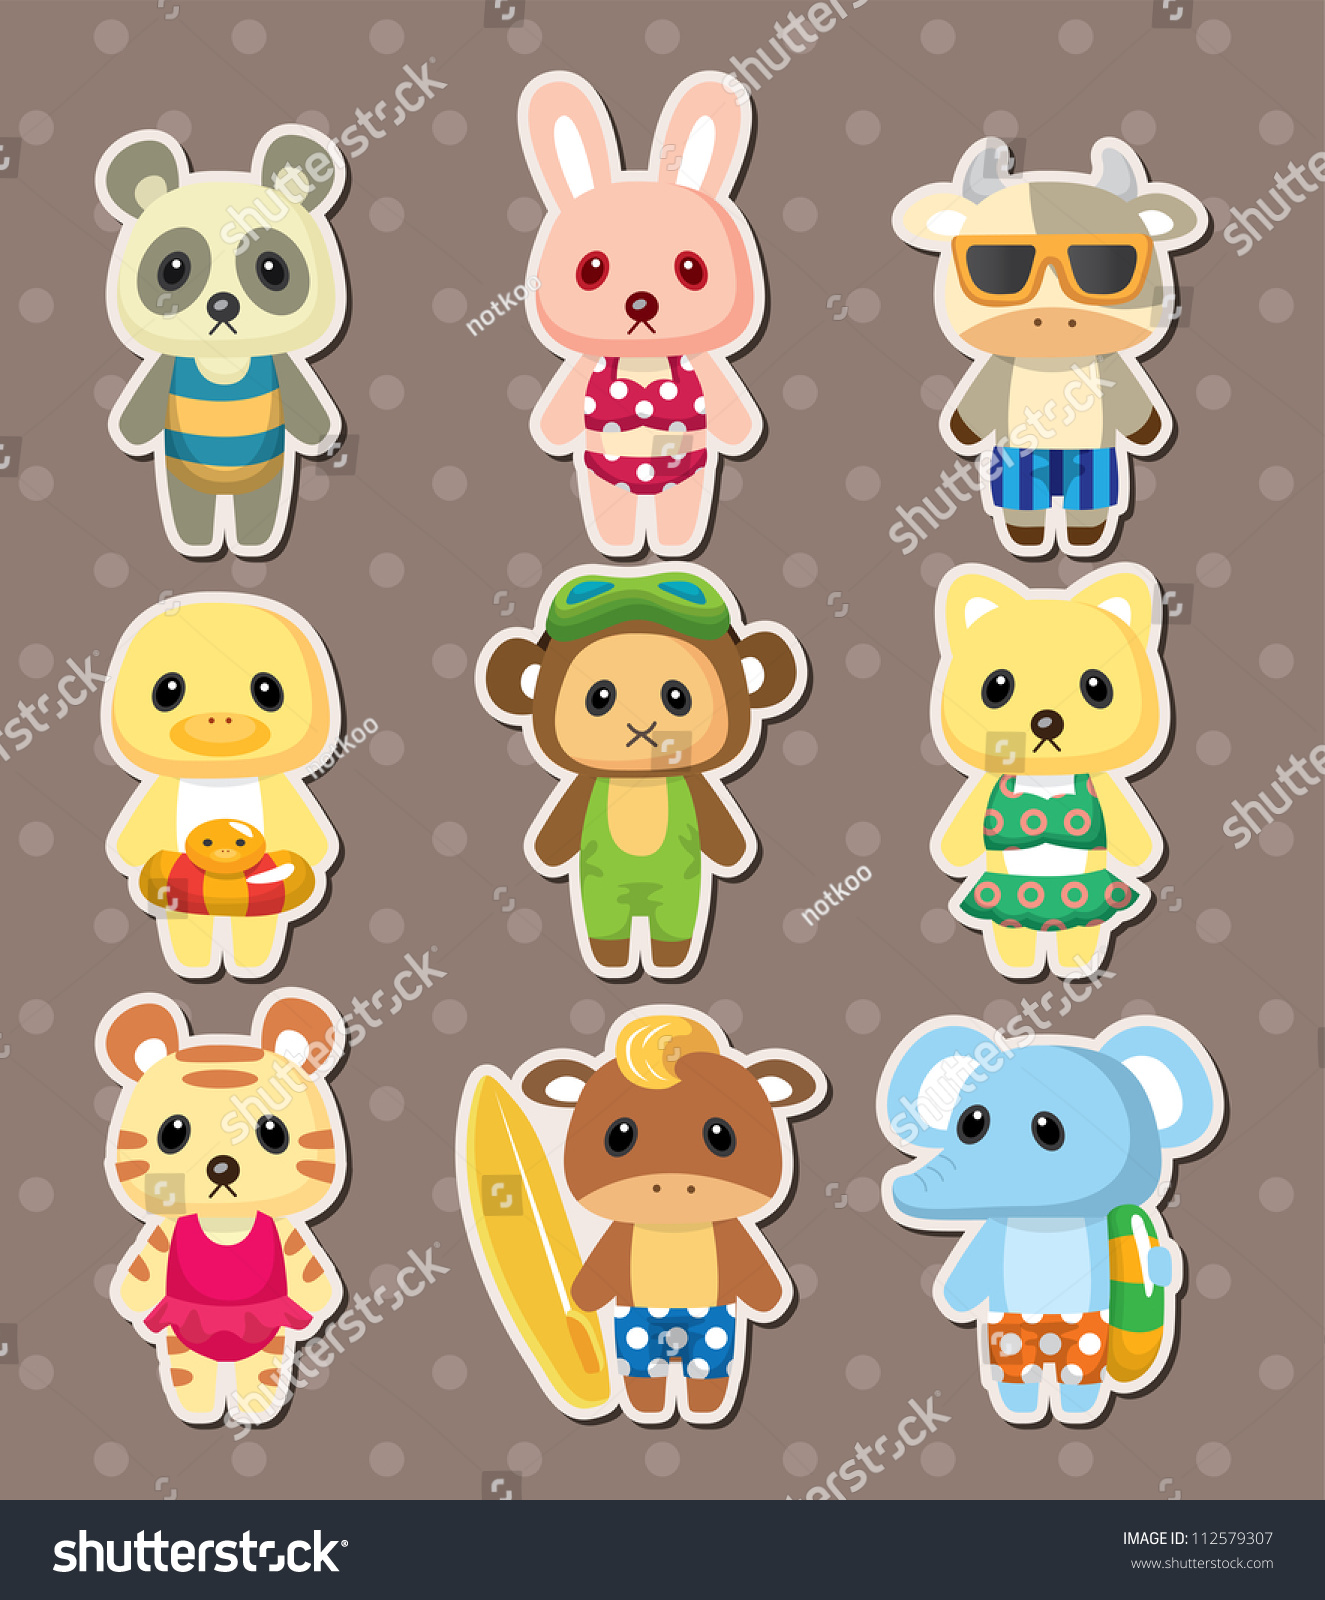 cartoon animal stickers in - photo #33